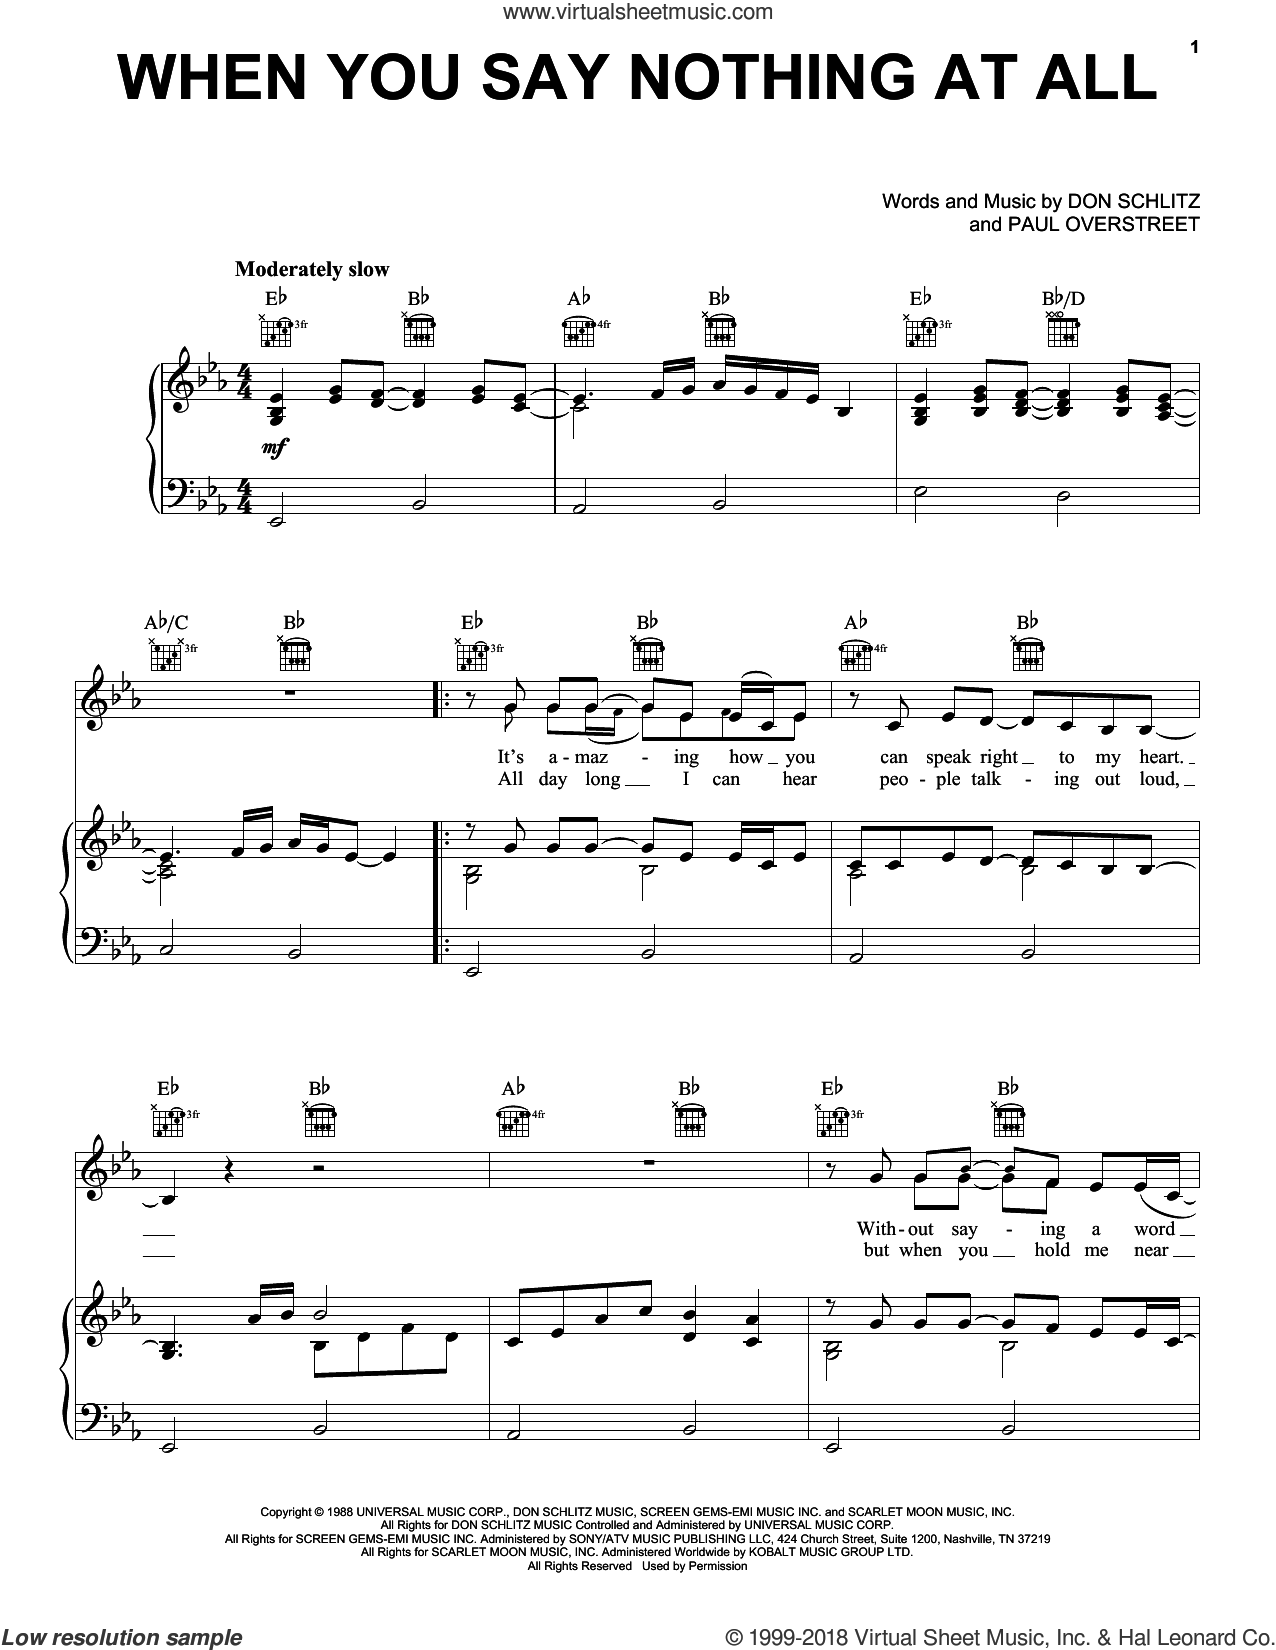 When You Say Nothing At All sheet music for voice, piano or guitar by Paul Overstreet, Alison Krauss, Alison Krauss & Union Station and Don Schlitz. Score Image Preview.